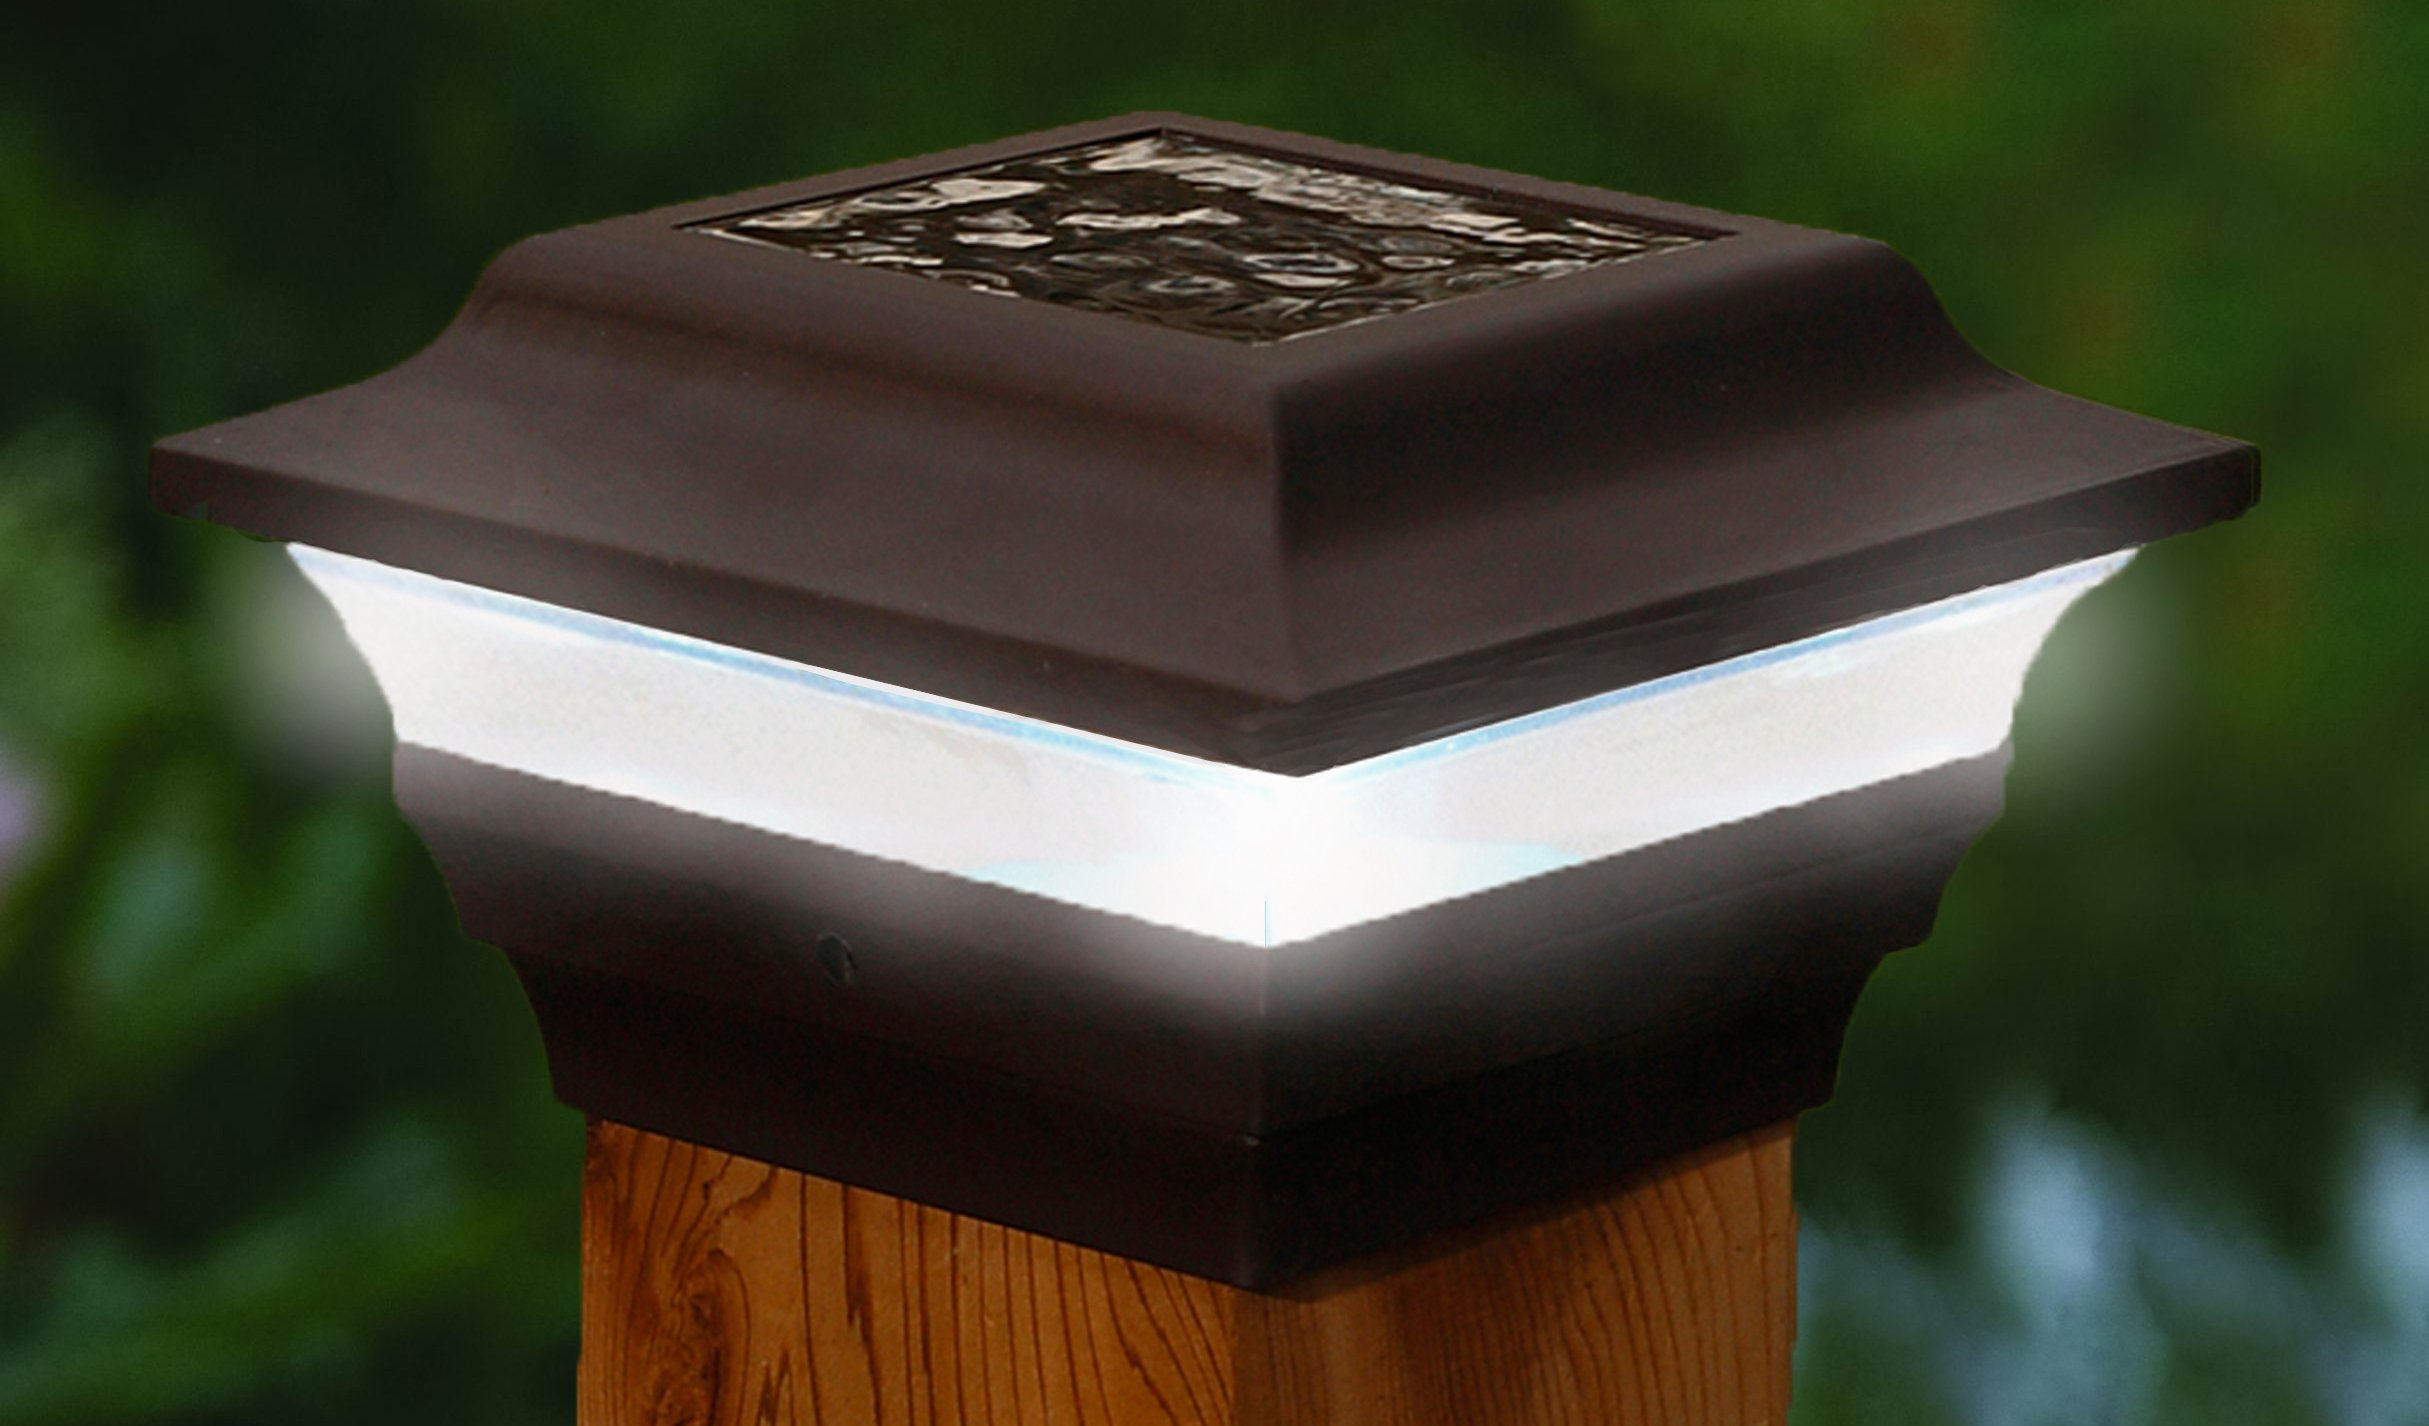 Imperial Solar Post Cap Light, Classy Caps SL211R, LED Deck Light, 3.5'' or 4'' Post, Bronze by Classy Caps